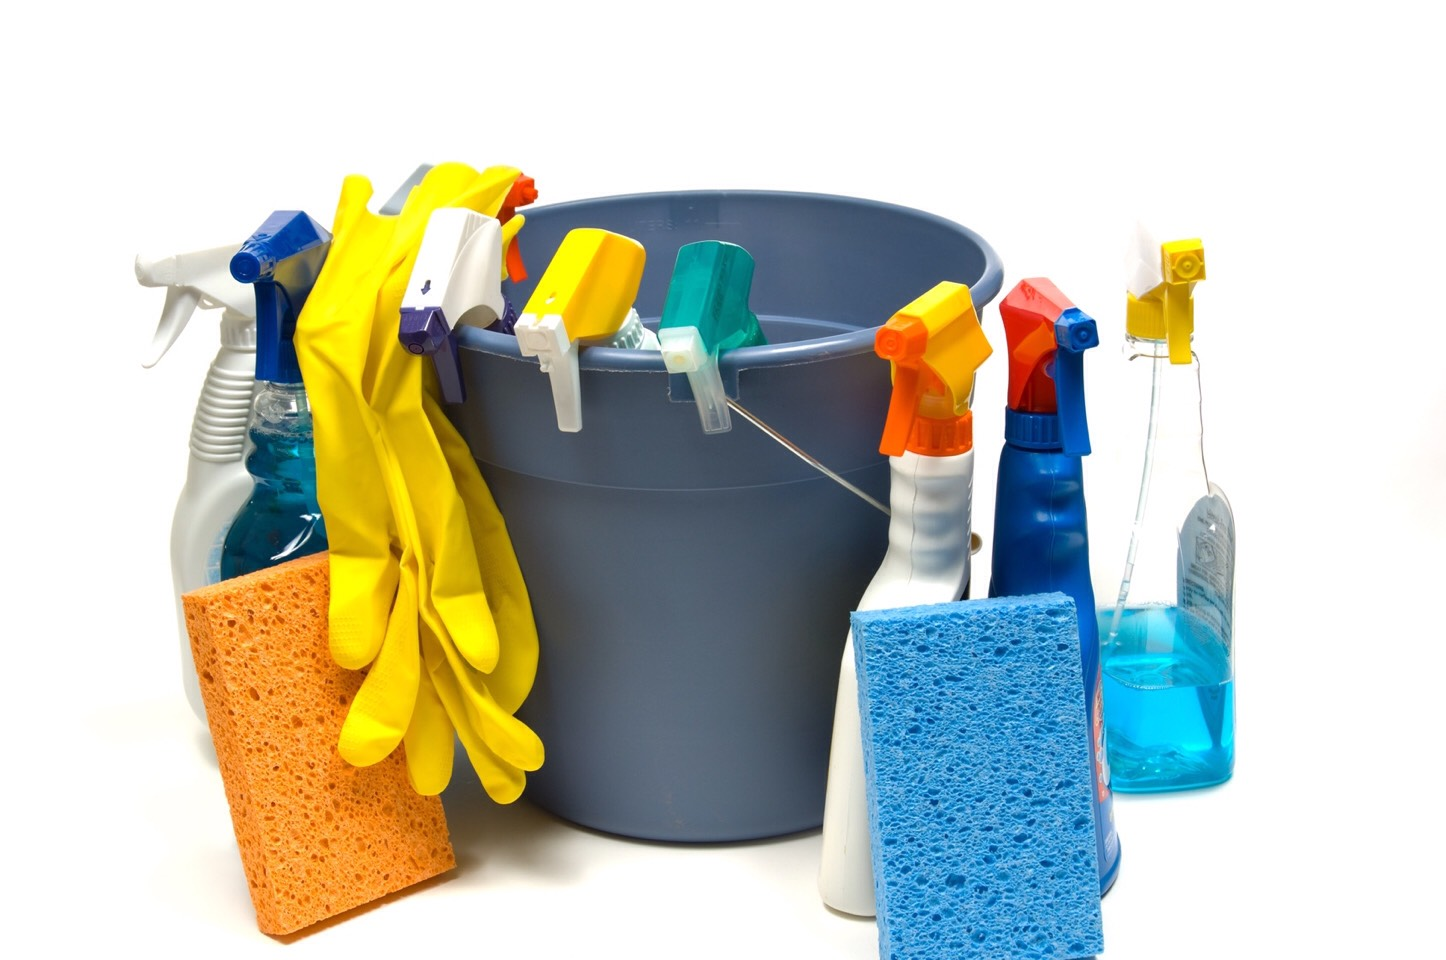 5.  You should keep your house as clean as possible on a constant basis. It's not good to have a messy house that you clean every once in awhile. That will cause your allergies to be worse, and increases your chance of getting sick.